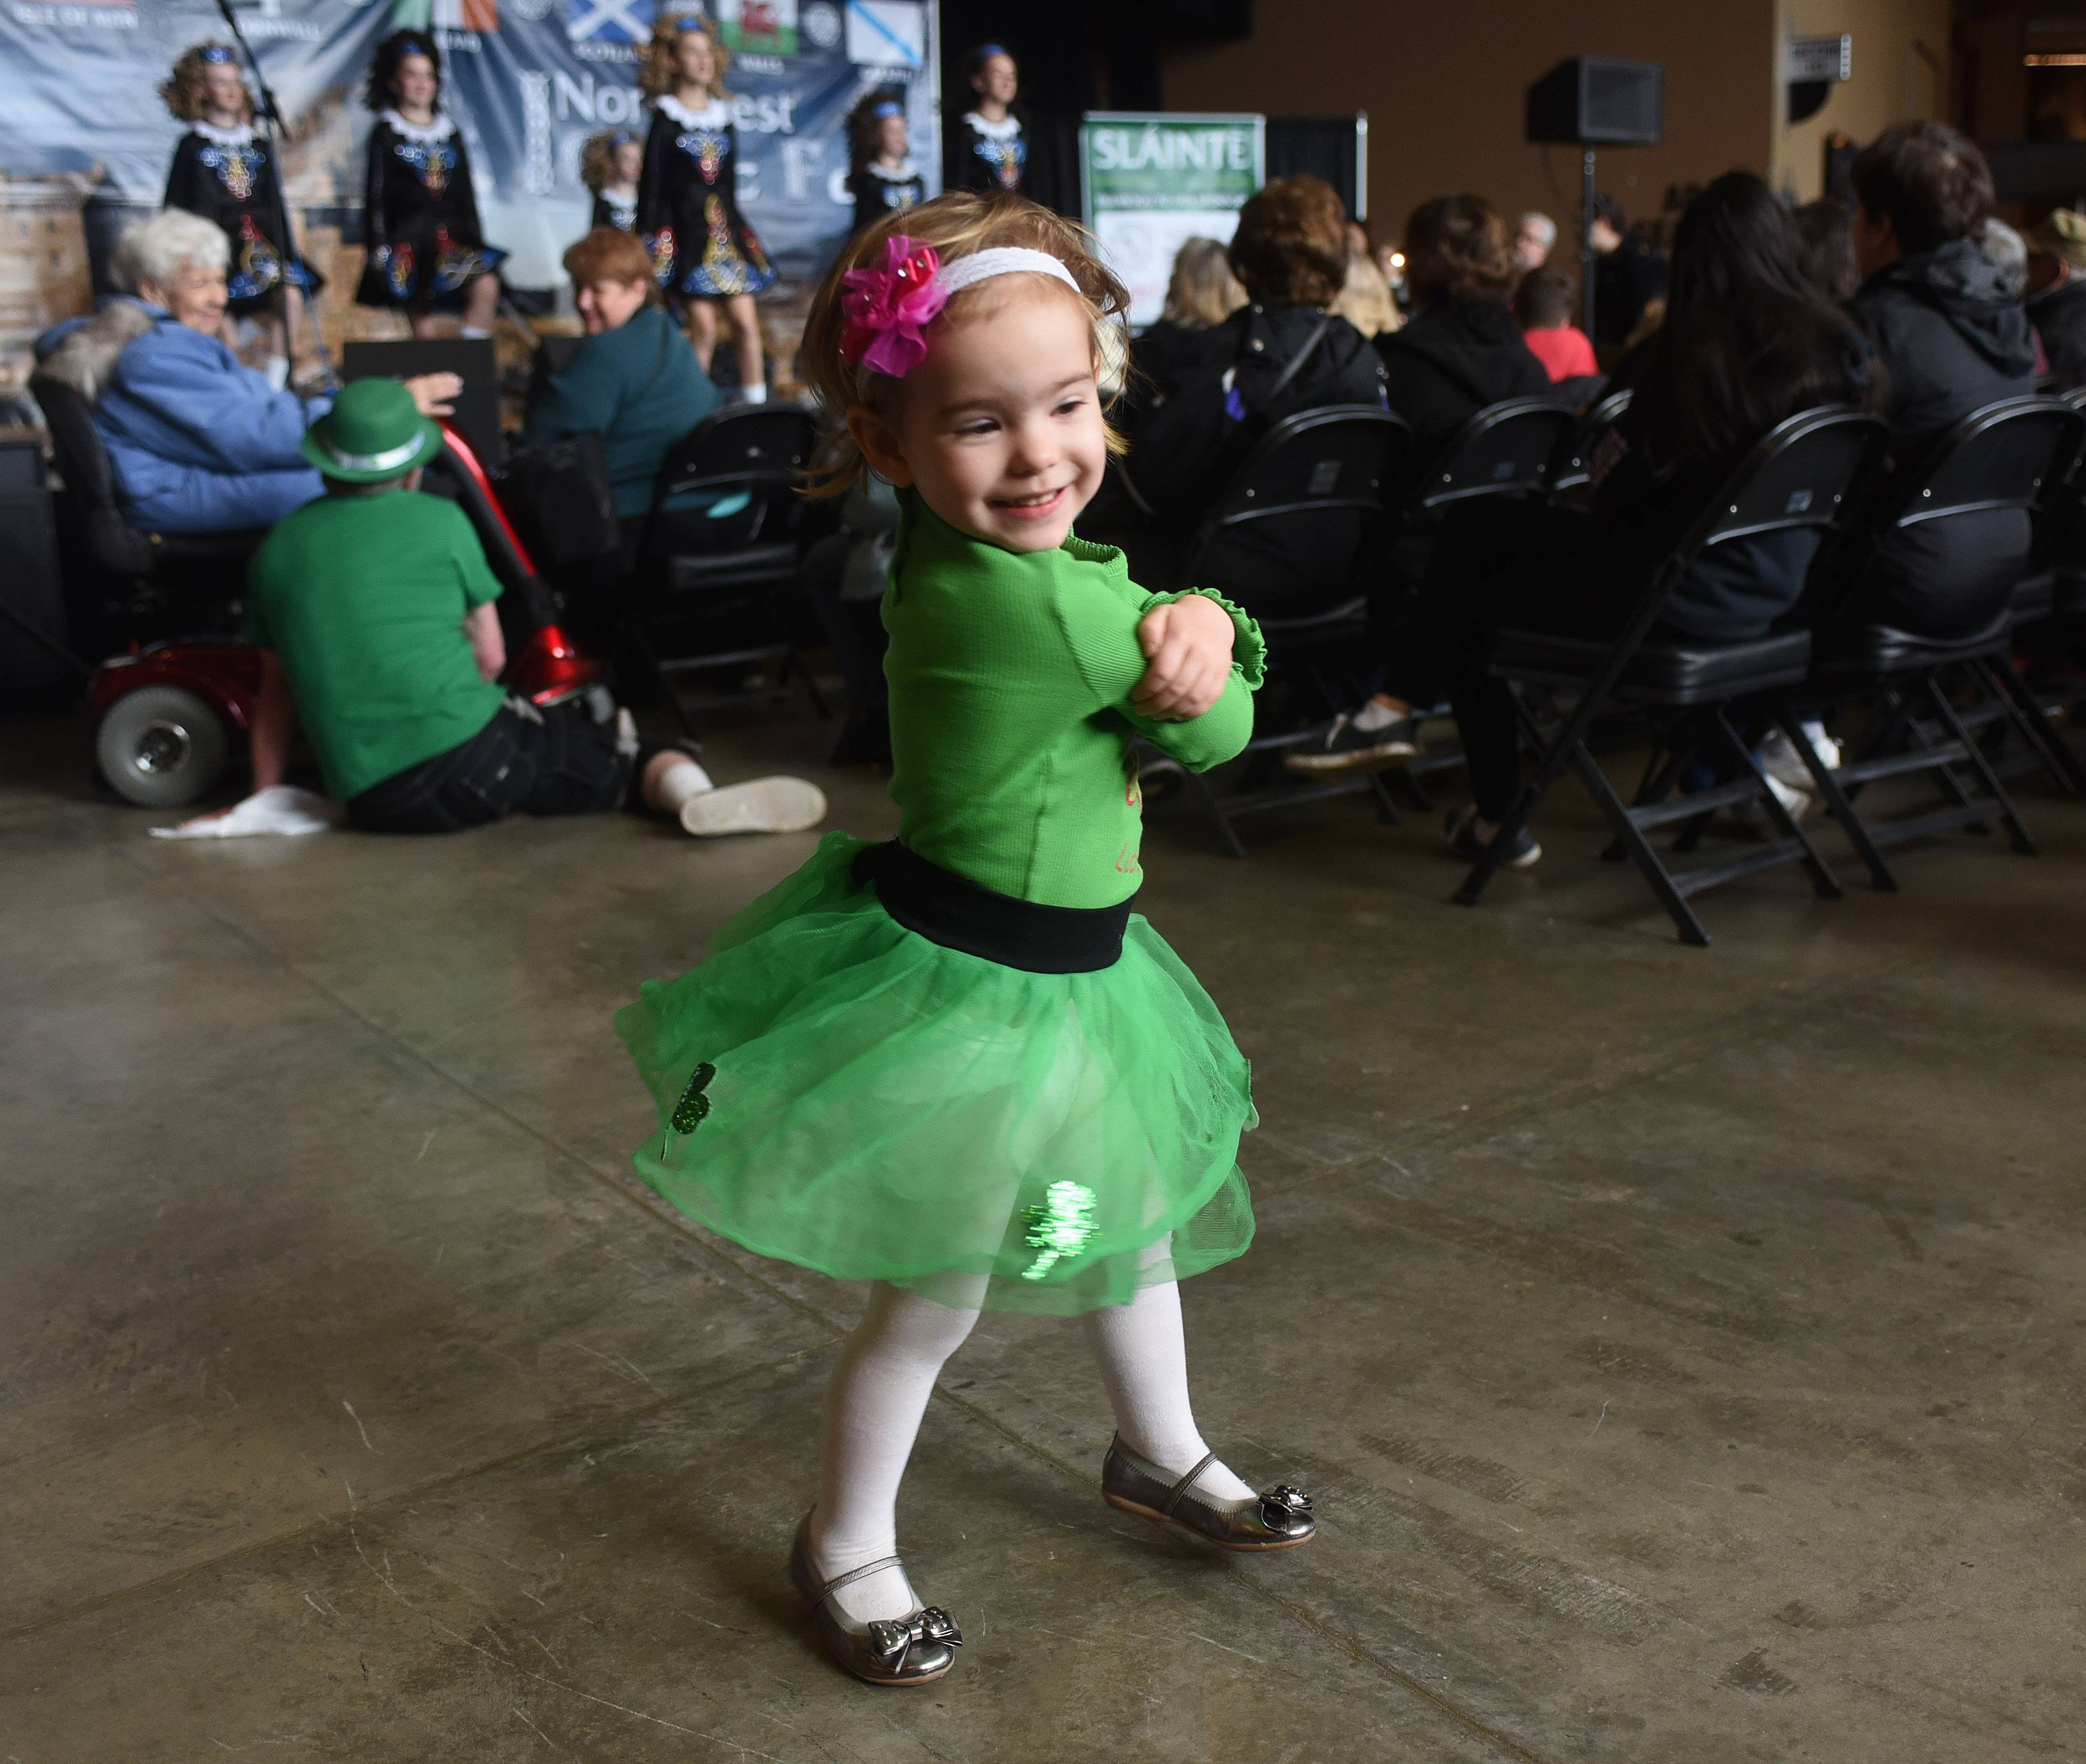 Audience member Peyton Hoffman, 2, of Hoffman Estates dances while the Rebecca McCarthy School of Irish Dance performs on stage during the fifth annual Northwest Celtic Fest at the Sears Centre in Hoffman Estates Saturday. Hoffman was attending the event with her twin brother, Jadon, and her mom, Julie.